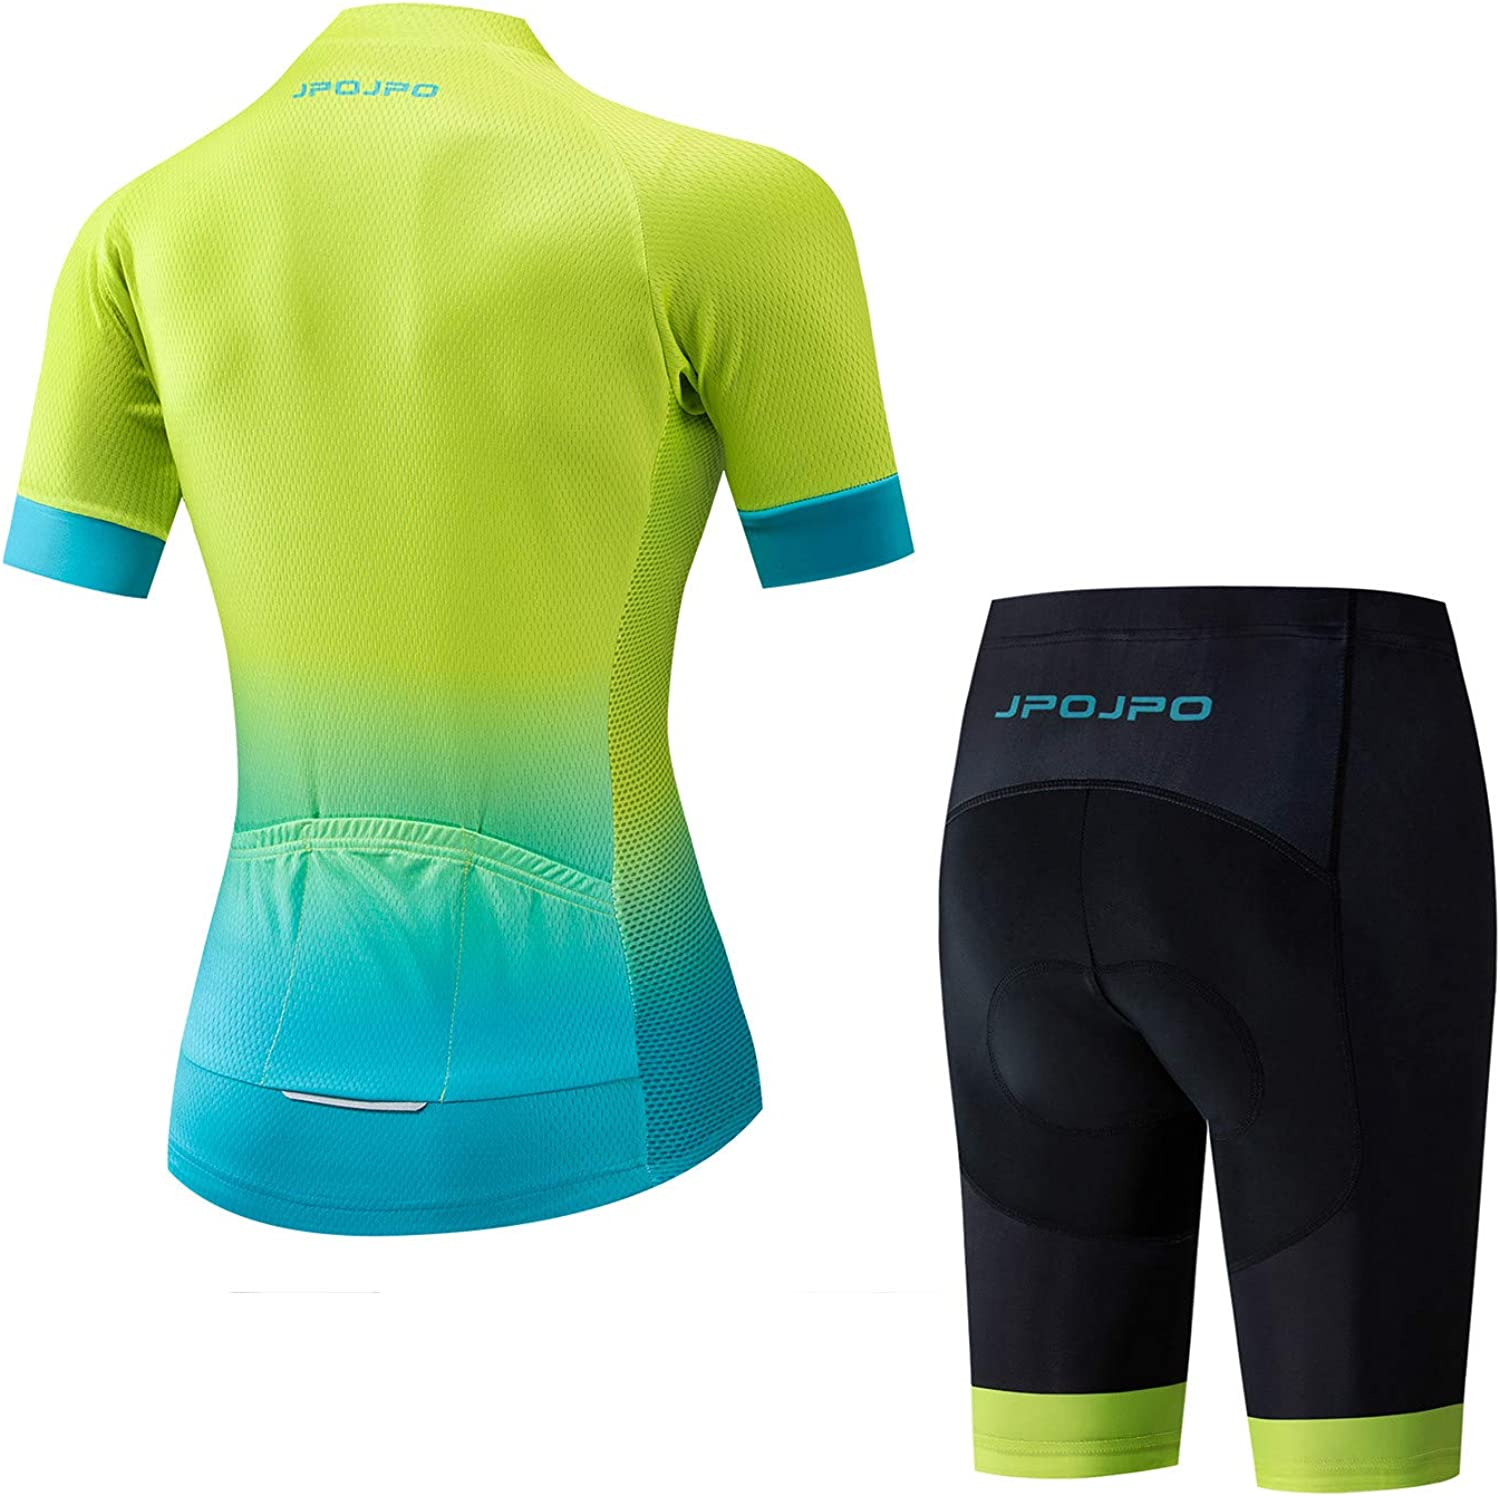 Cycling Jersey Women Set Short Sleeve+5D Padded Bicycle Shorts Breathable Quick-Dry 3-Pockets S-3XL